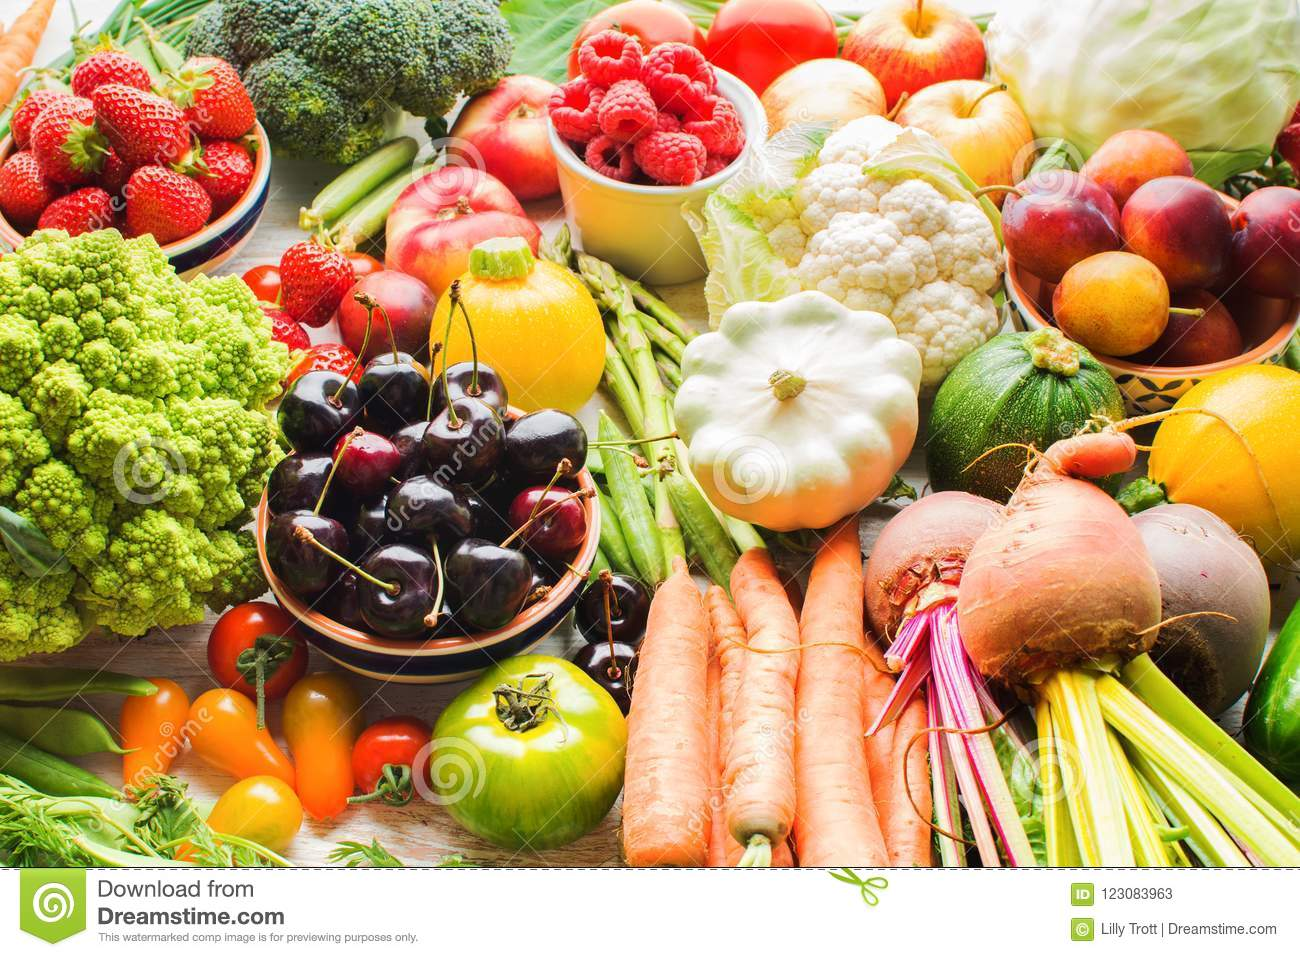 Lots Of Summer Fruits Vegetables Berries, Apples Cherries Peaches  Strawberries Cabbage Broccoli Cauliflower Squash Tomatoes Carrots Spring  Onions Beans ...